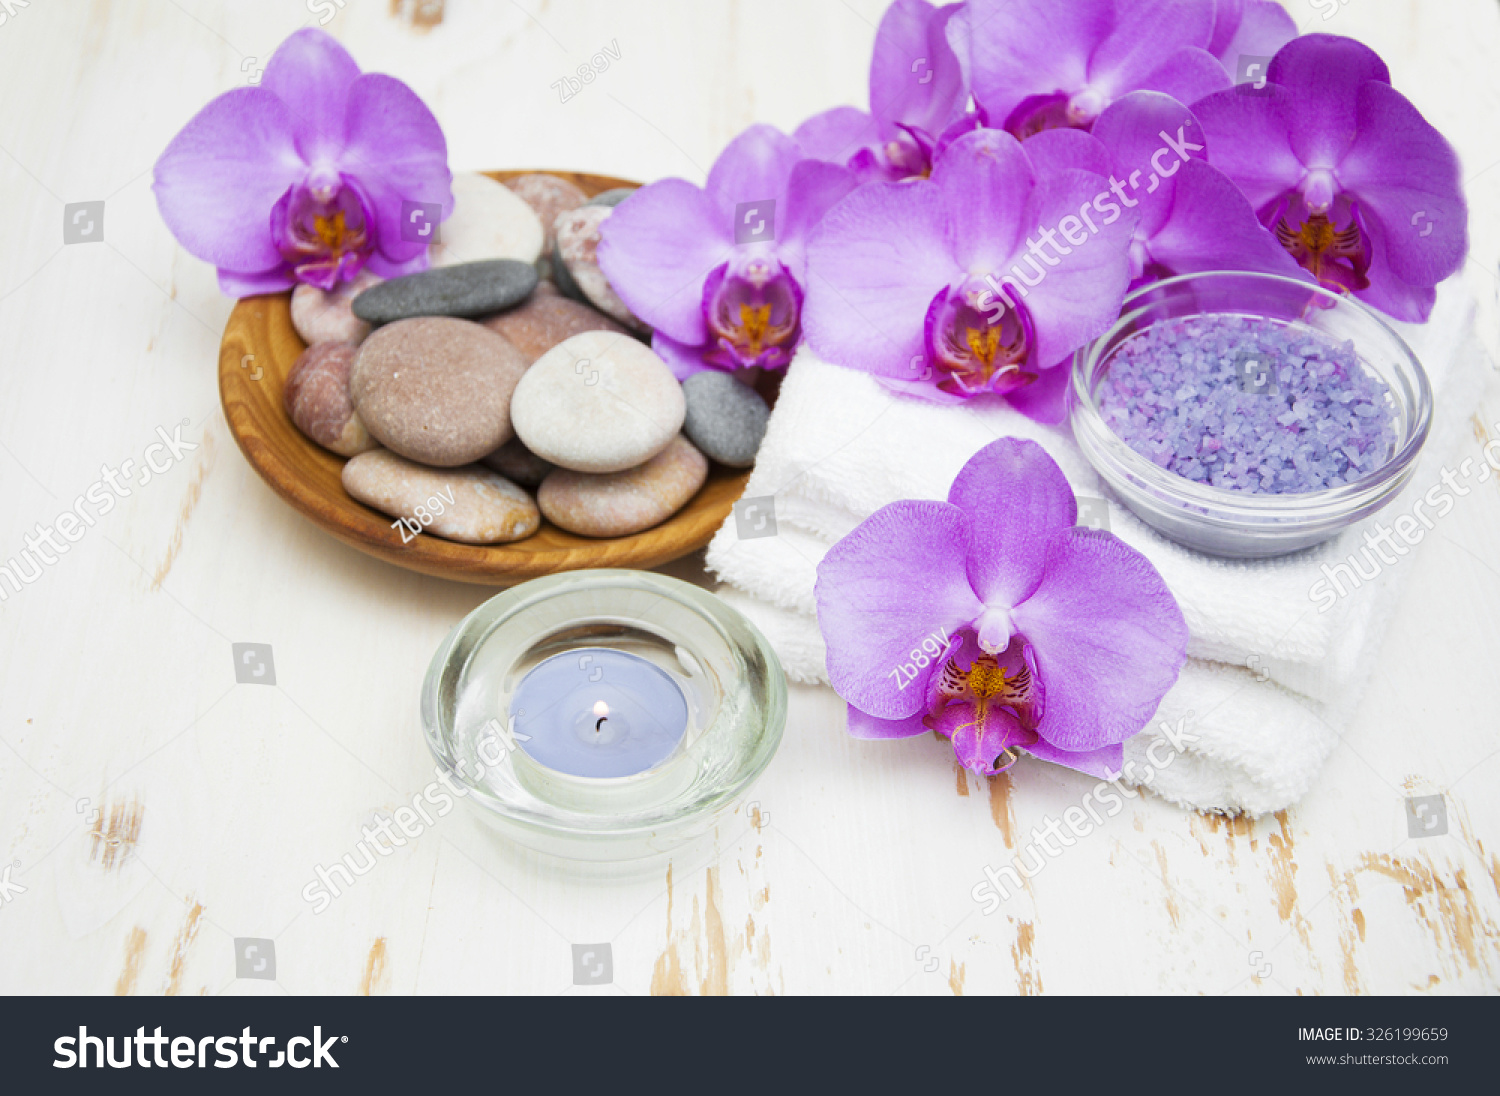 Spa Set Candle Orchid Flowerwhite Towels And Pebble On A Wooden